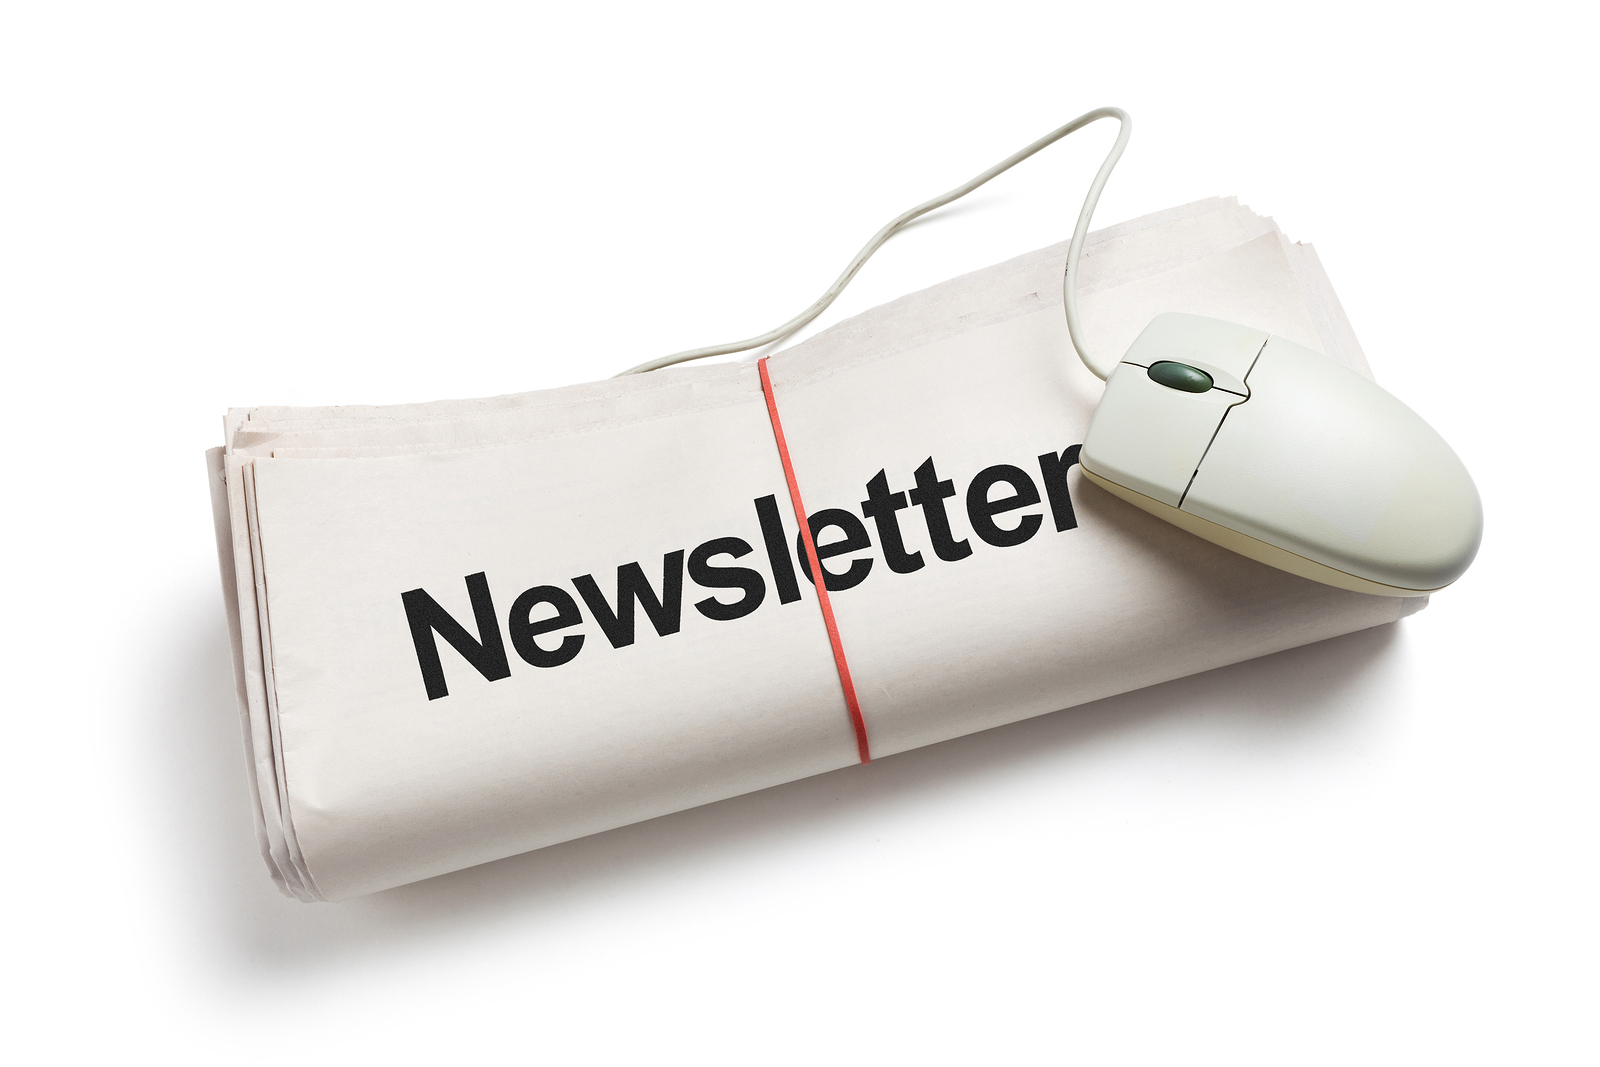 Want your Potential Customers to Subscribe to your Newsletter? Read on!